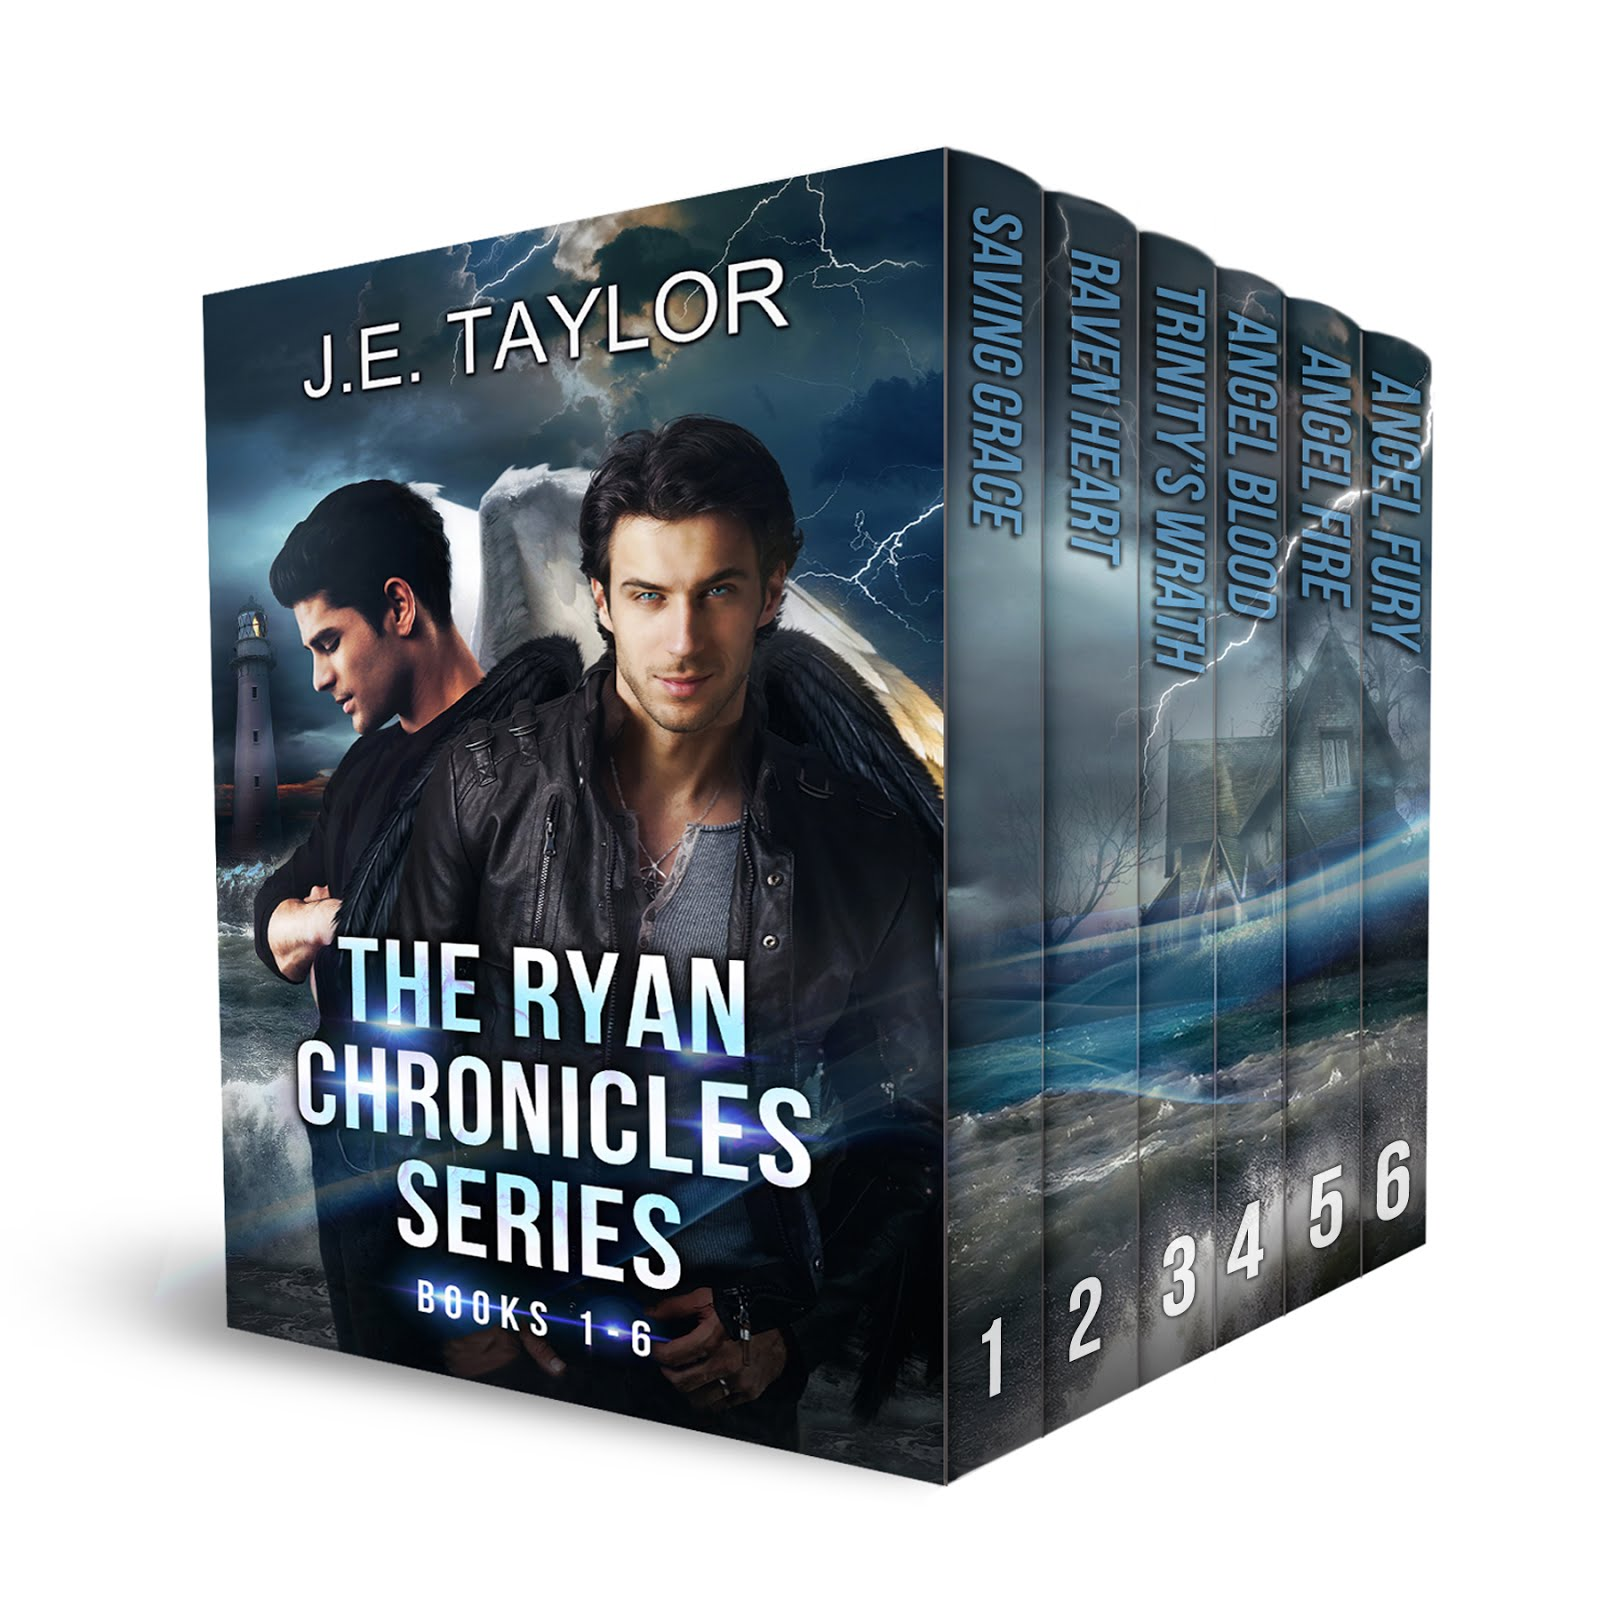 Ryan Chronicles Series Boxed Set